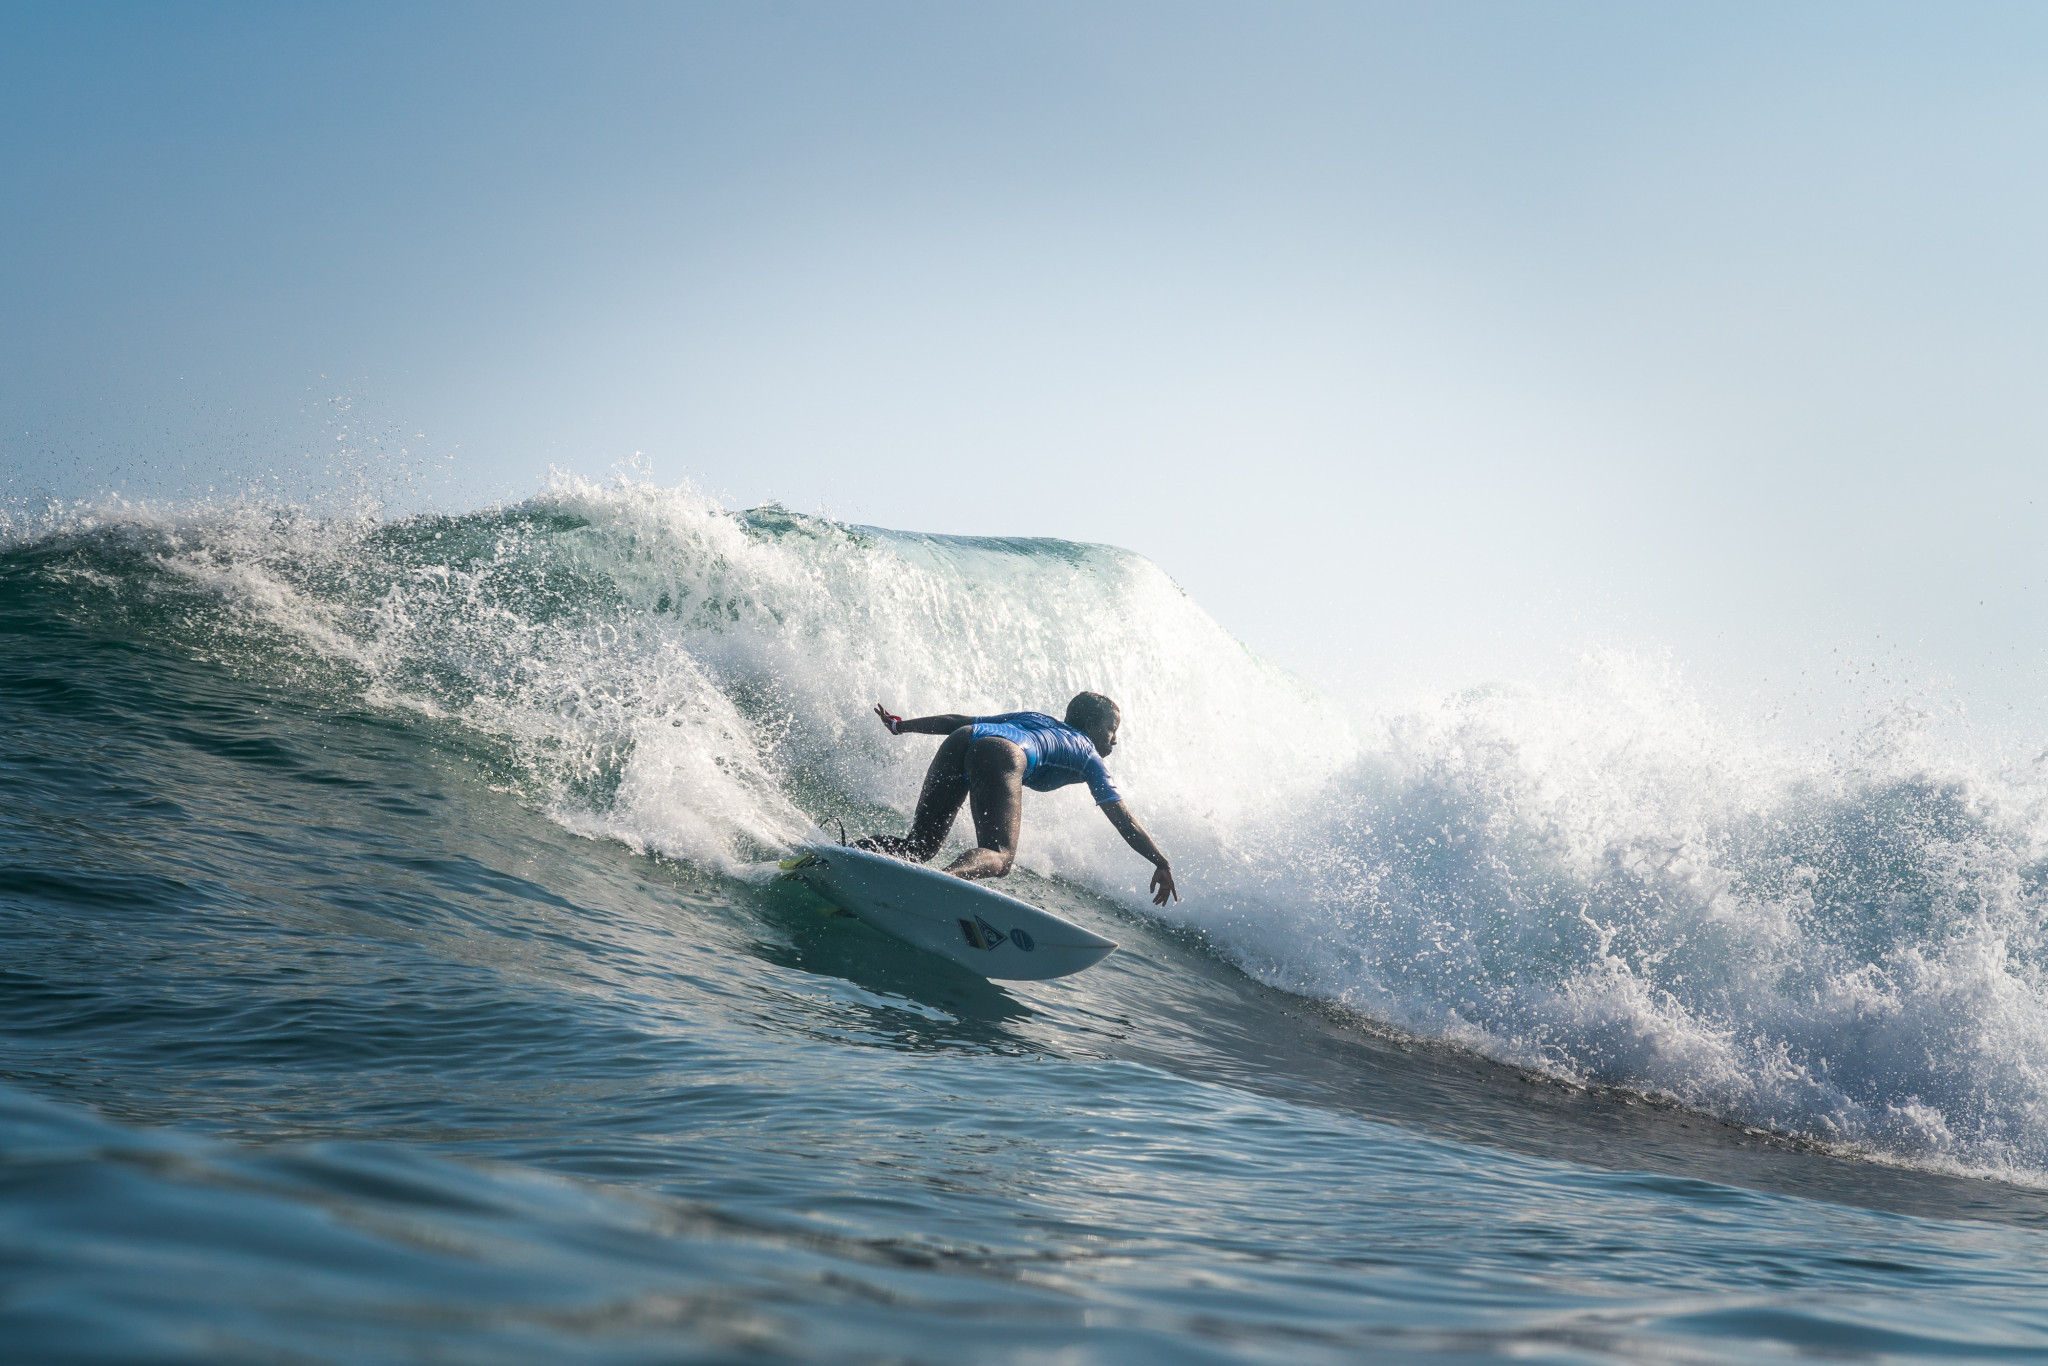 """ISA President Aguerre wants World Surfing Games to """"go around the world"""""""